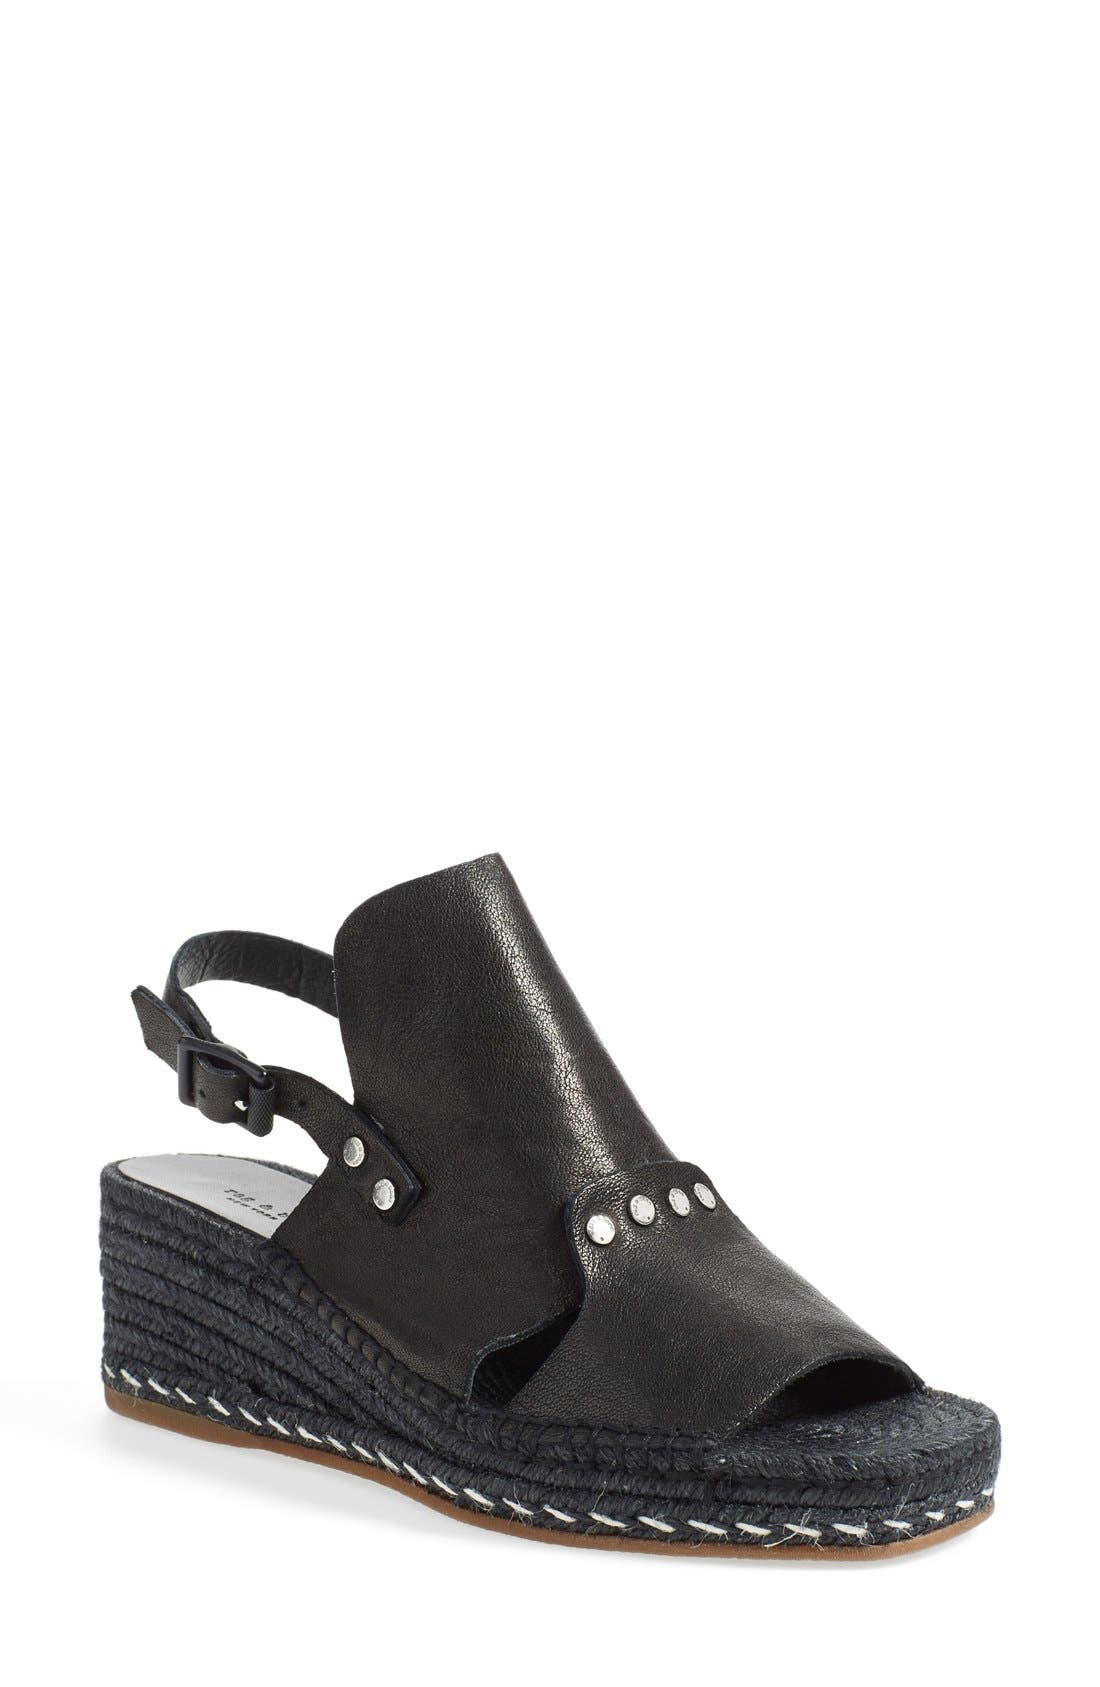 'Sayre II' Espadrille Wedge Sandal,                             Main thumbnail 1, color,                             Black